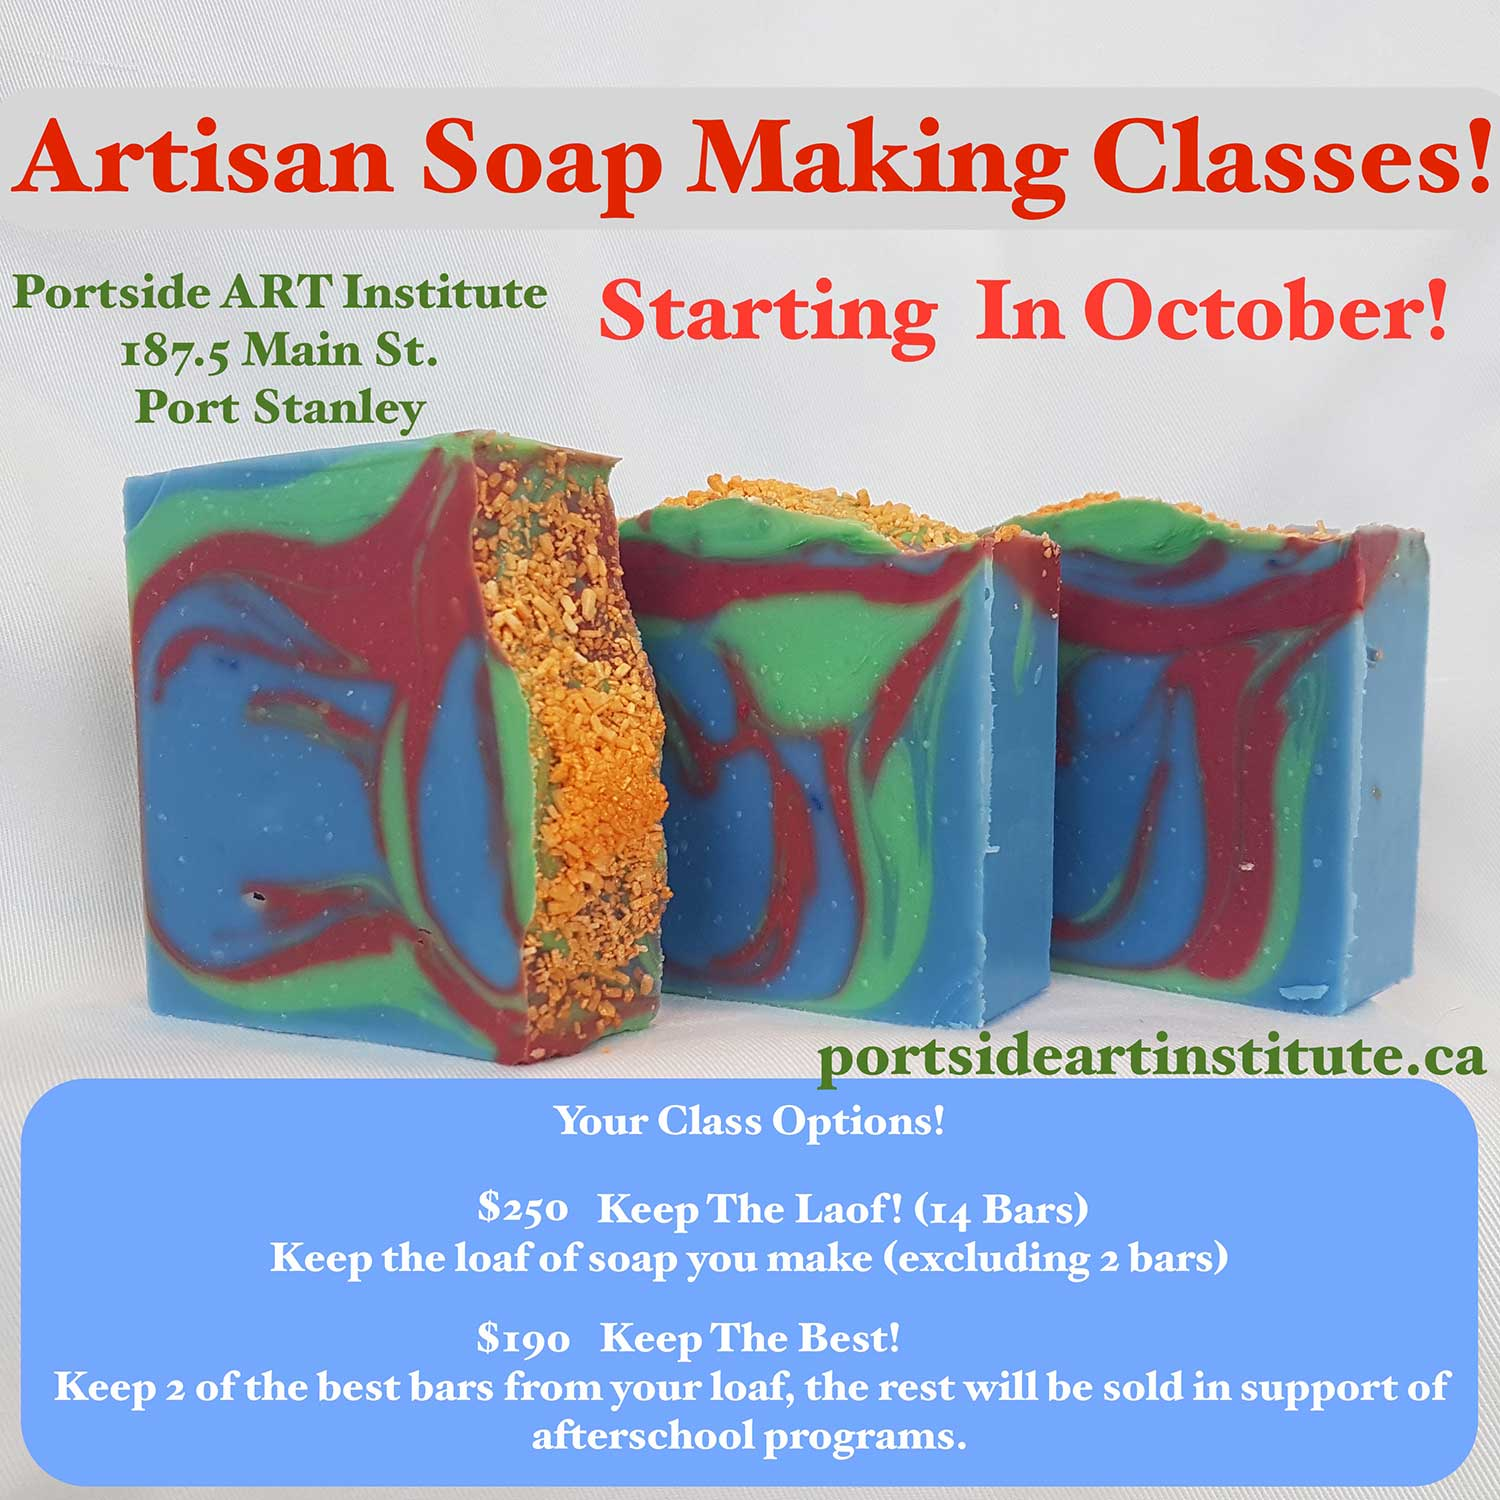 Artisan Soap Makitng Classes Starting in October Portside ART Institute 187.5 Main St. Port Stanley Your Class Options! $250 Keep the Loaf! (14 Bars) Keep the loaf of soap you make (excluding 2 bars) $190 Keep The Best! Keep 2 of the best bars from your loaf, the rest will be sold in support of after school programs.